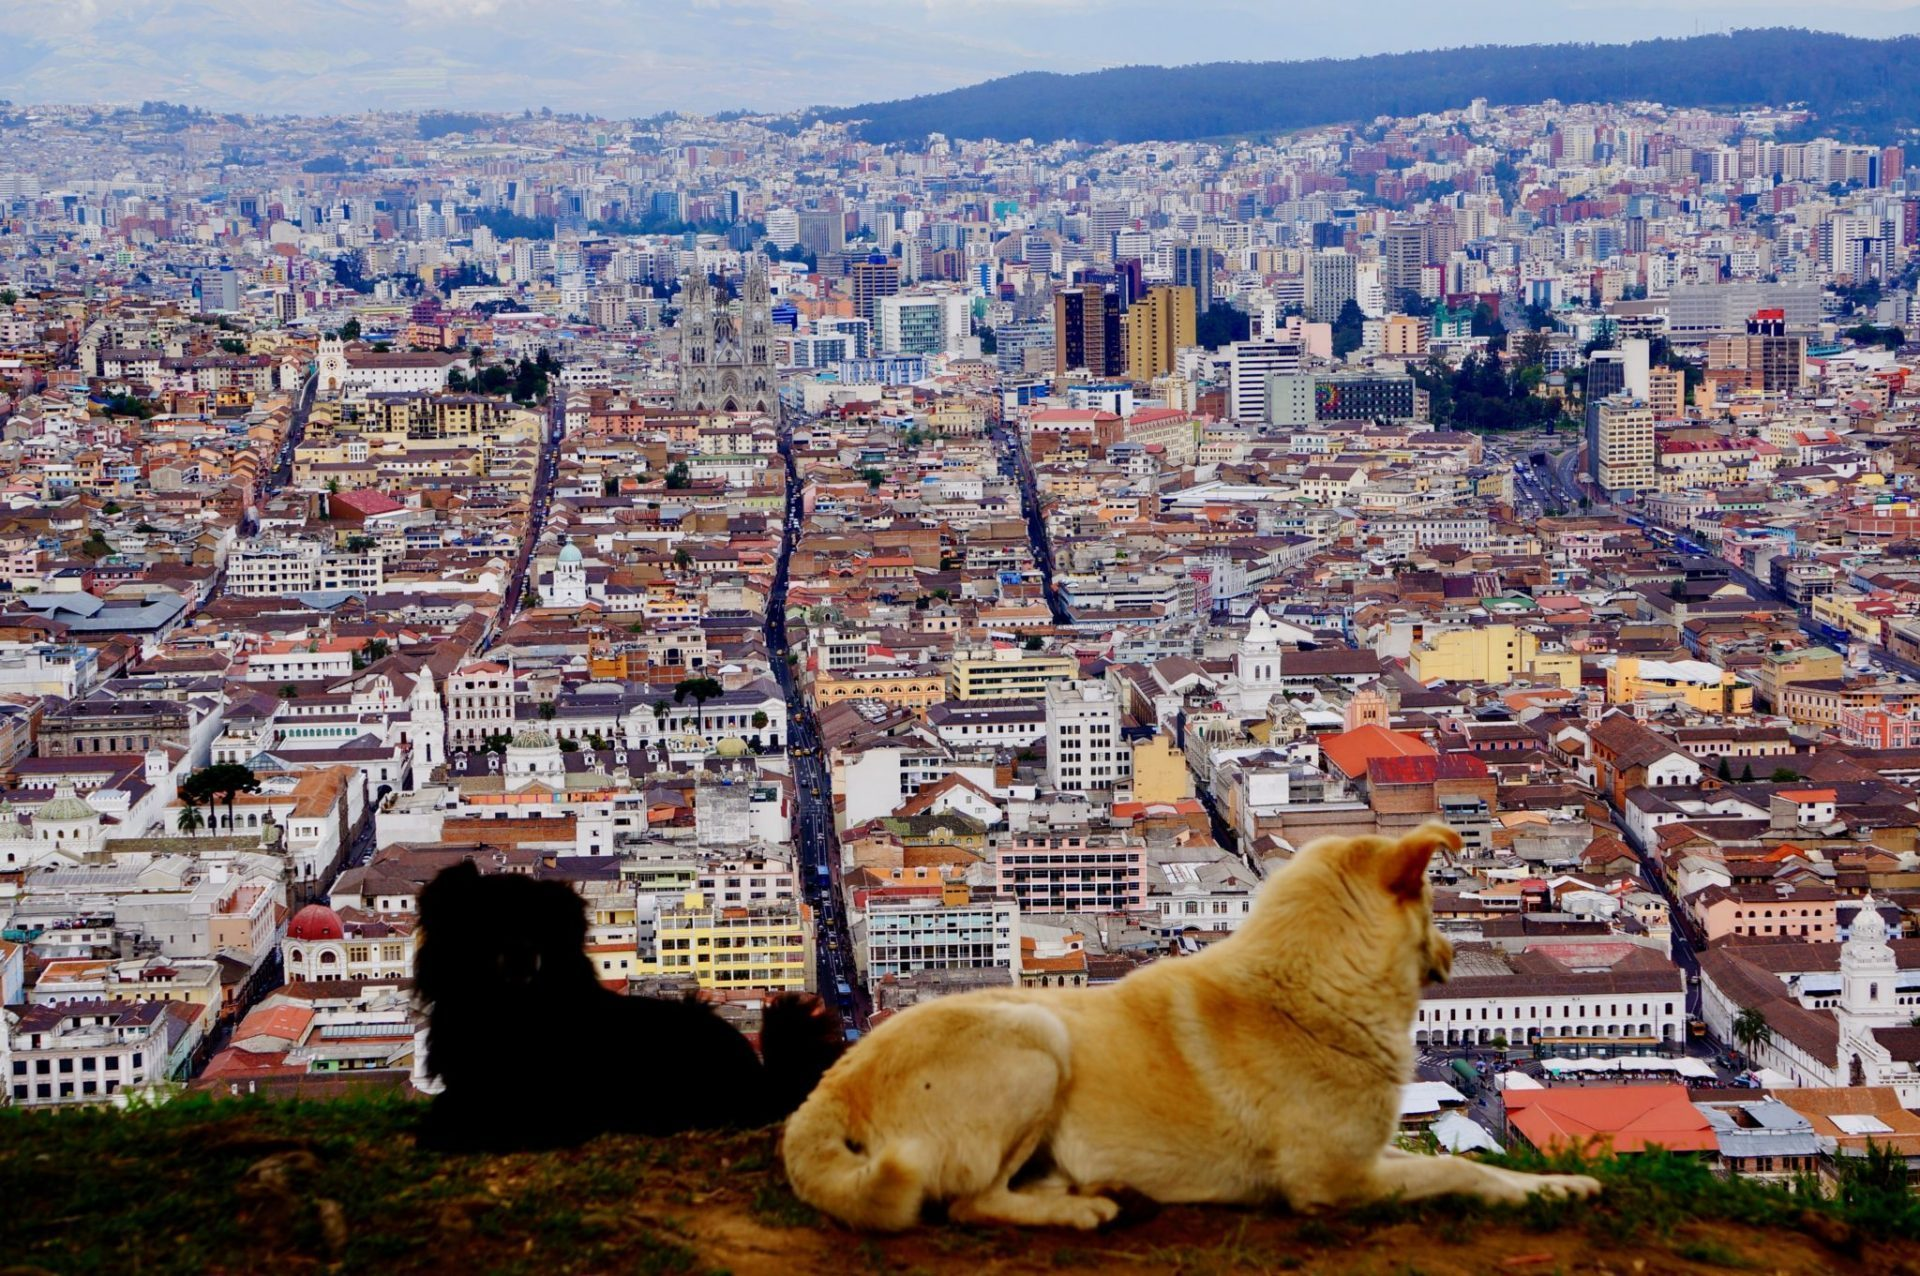 20 best things to do in quito ecuador travel tips you need to know